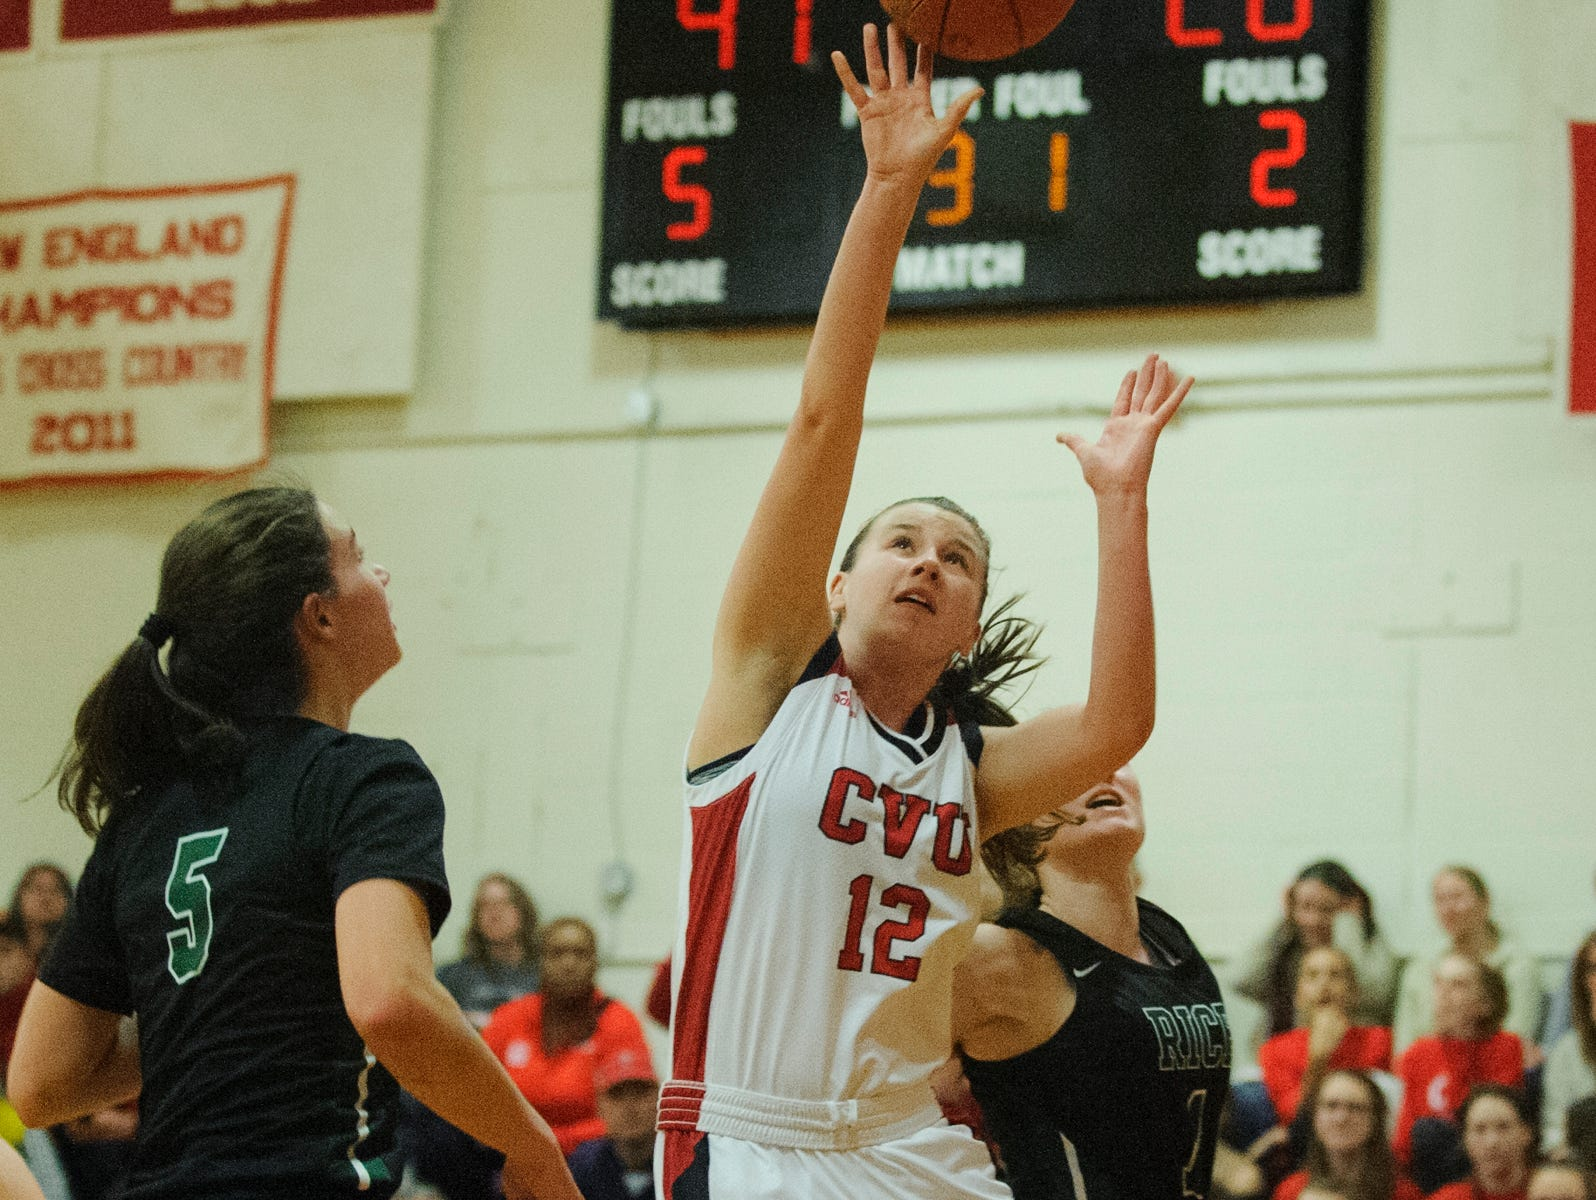 CVU's Harper Mead (12) shoots the ball during high school girls basketball game between the Rice Green Knights and the Champlain Valley Union Redhawks at CVU High School on Friday night January 11, 2019 in Hinesburg.